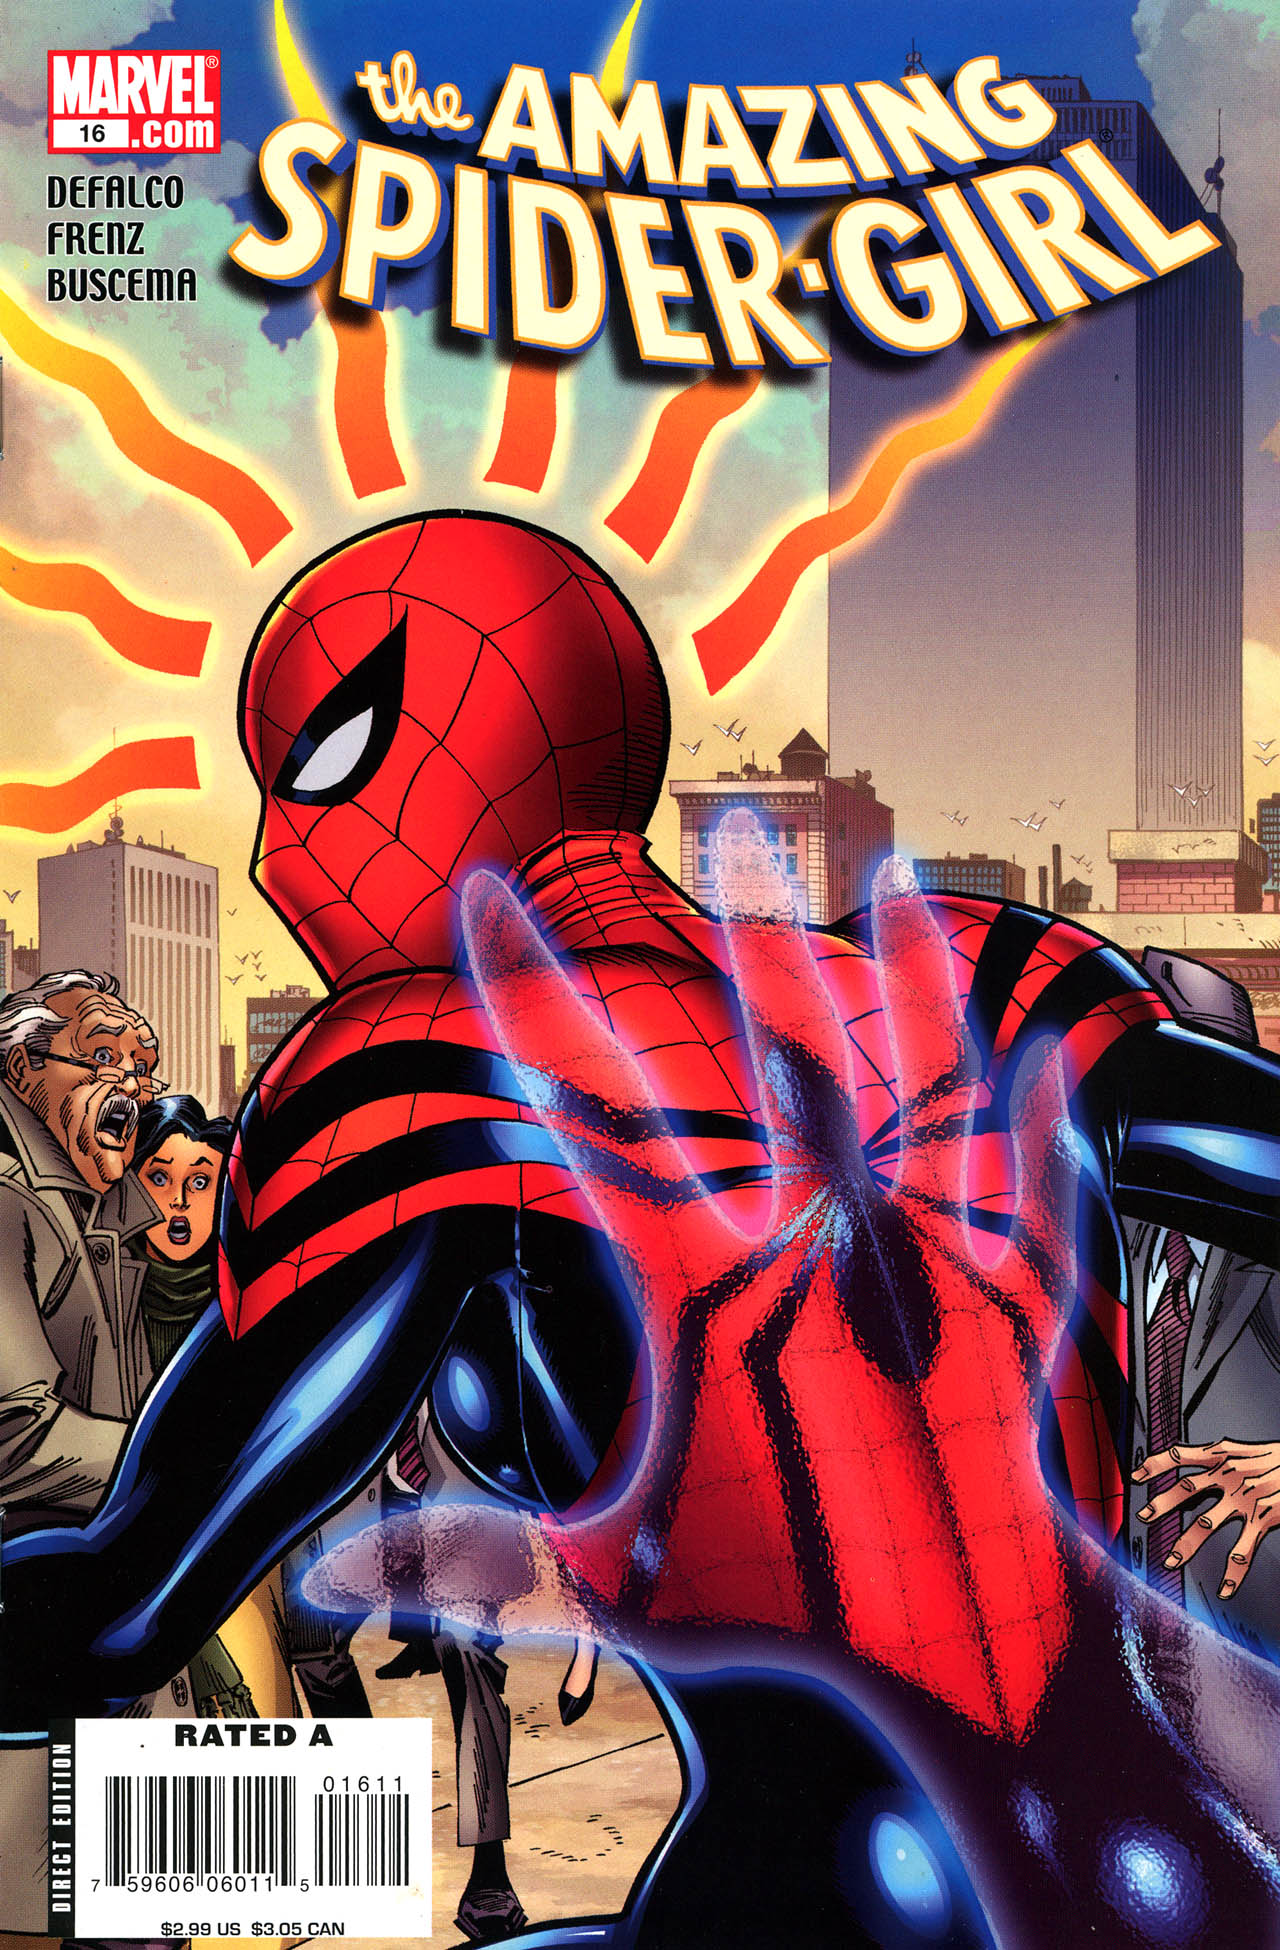 Read online Amazing Spider-Girl comic -  Issue #16 - 1